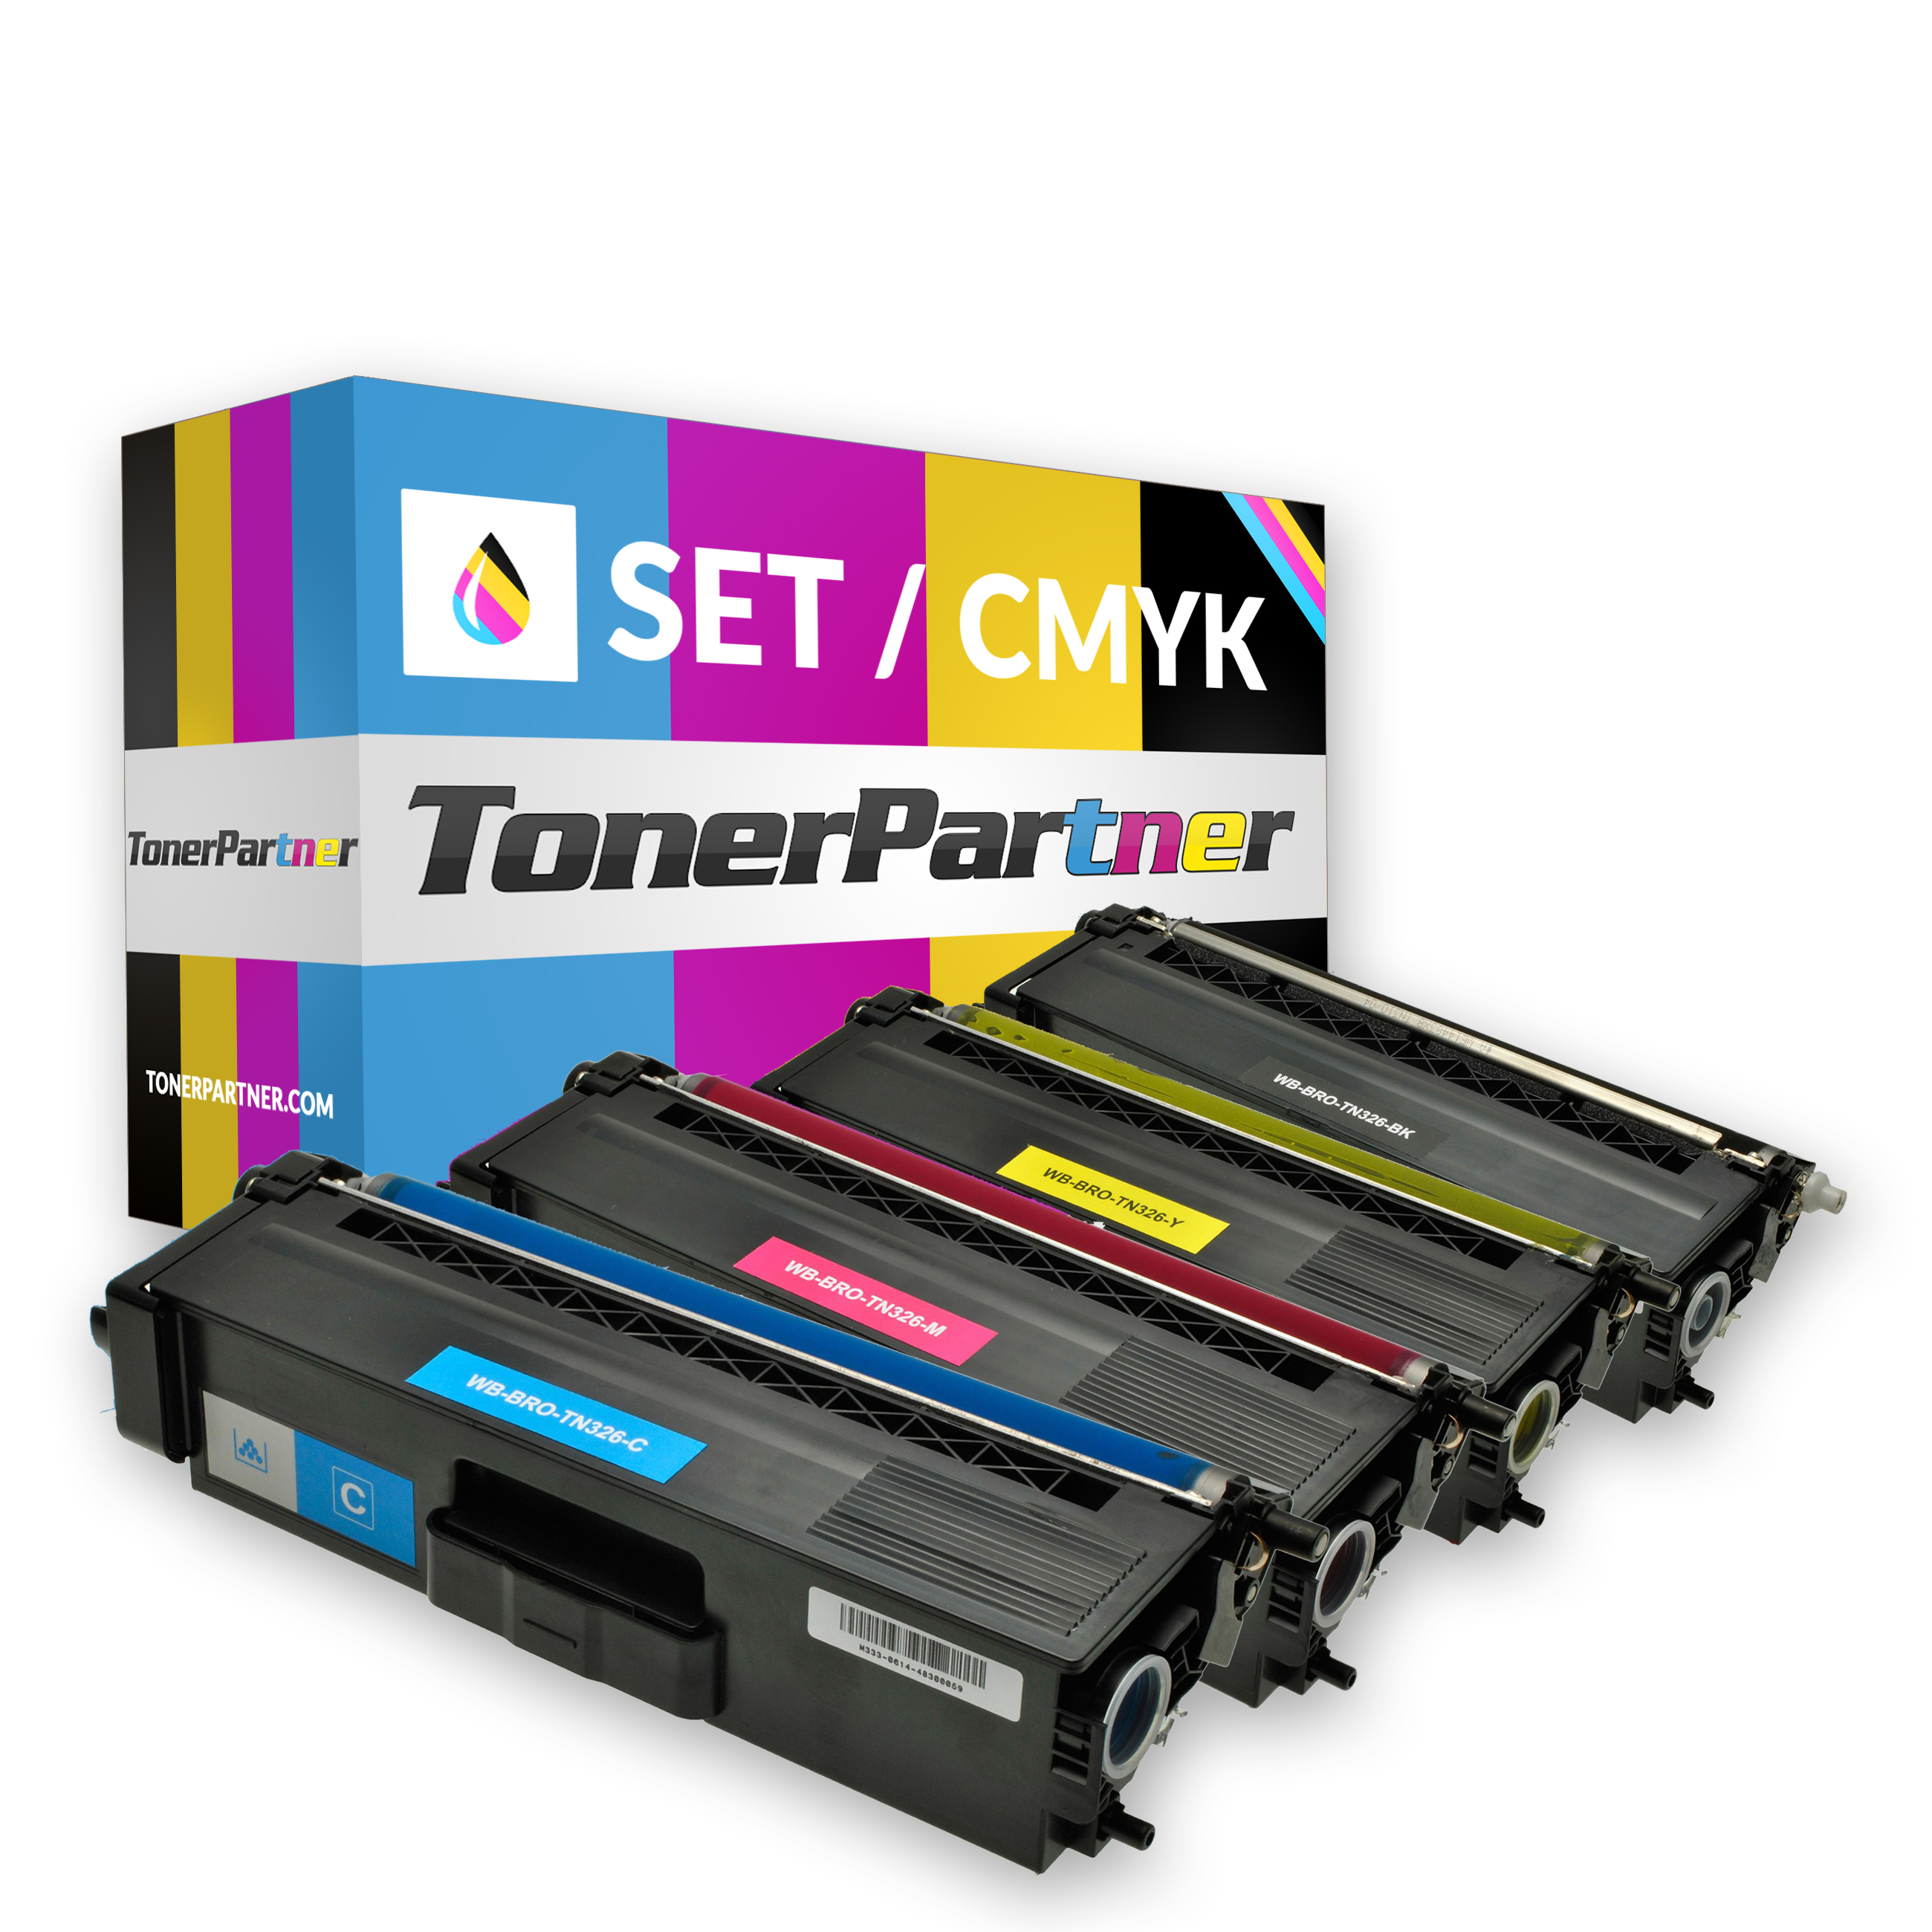 Brother TN-326BK (1x 4.000 Seiten) - TN-326C/M/Y (3x 3.500 Seiten) Toner MultiPack Kompatibel